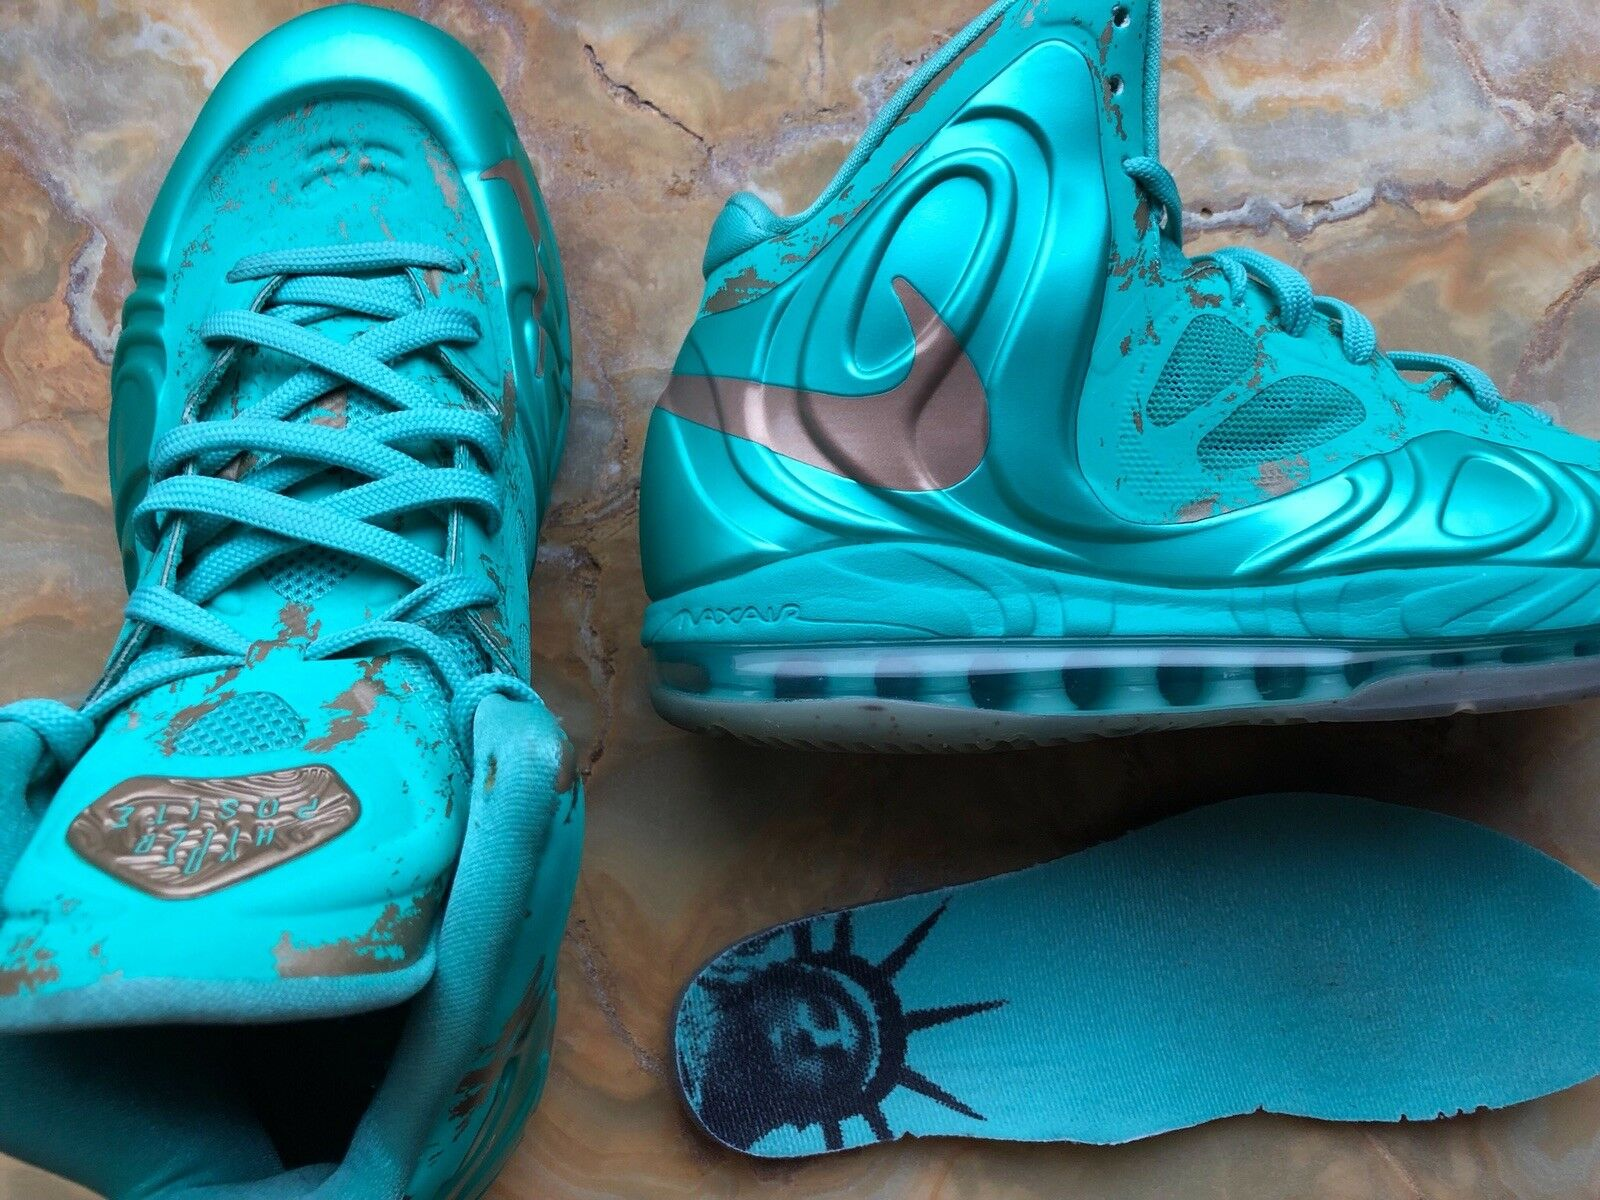 Nike Air Max Hyperposite SZ 8 Statue of Liberty 524862 301  QS Rare release